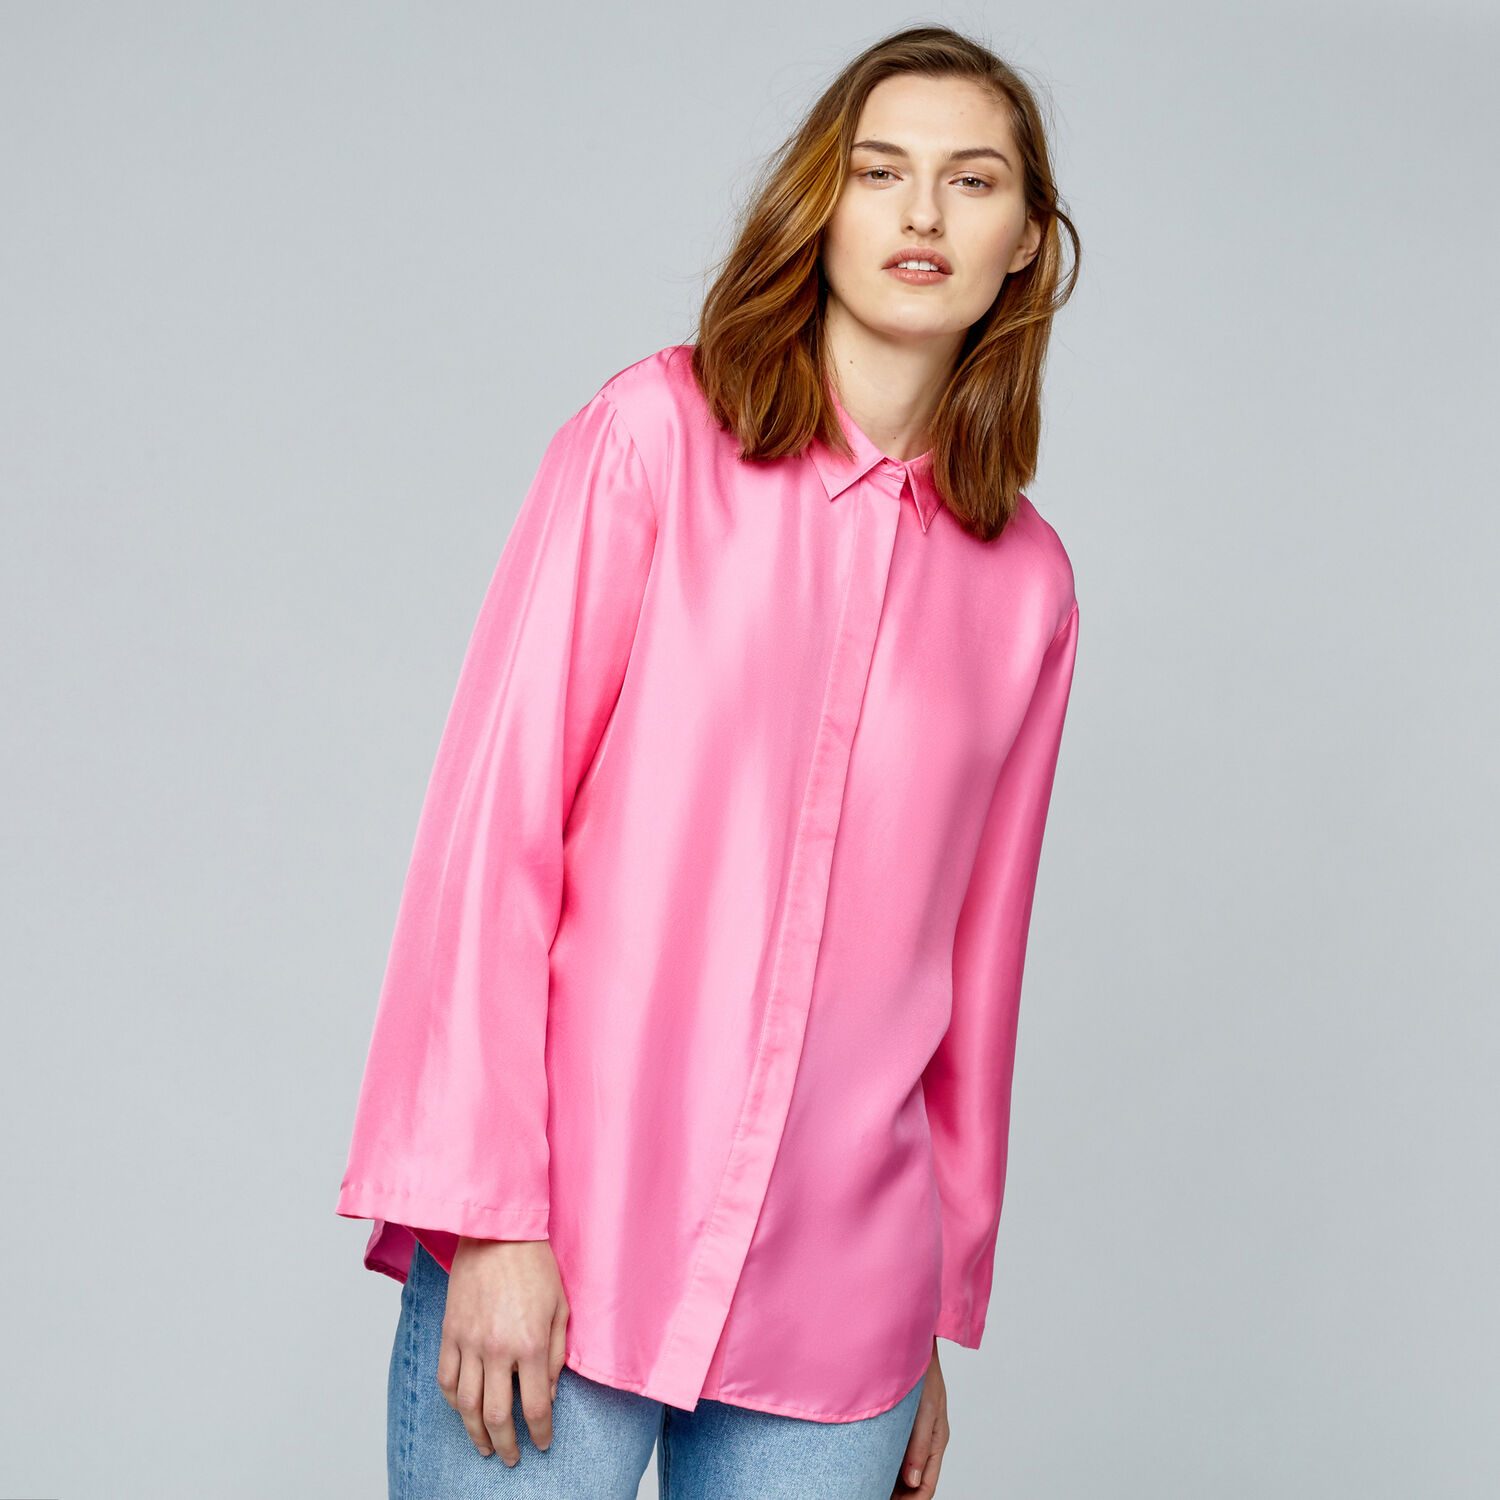 Warehouse, PLAIN SILK BLOUSE Bright Pink 1